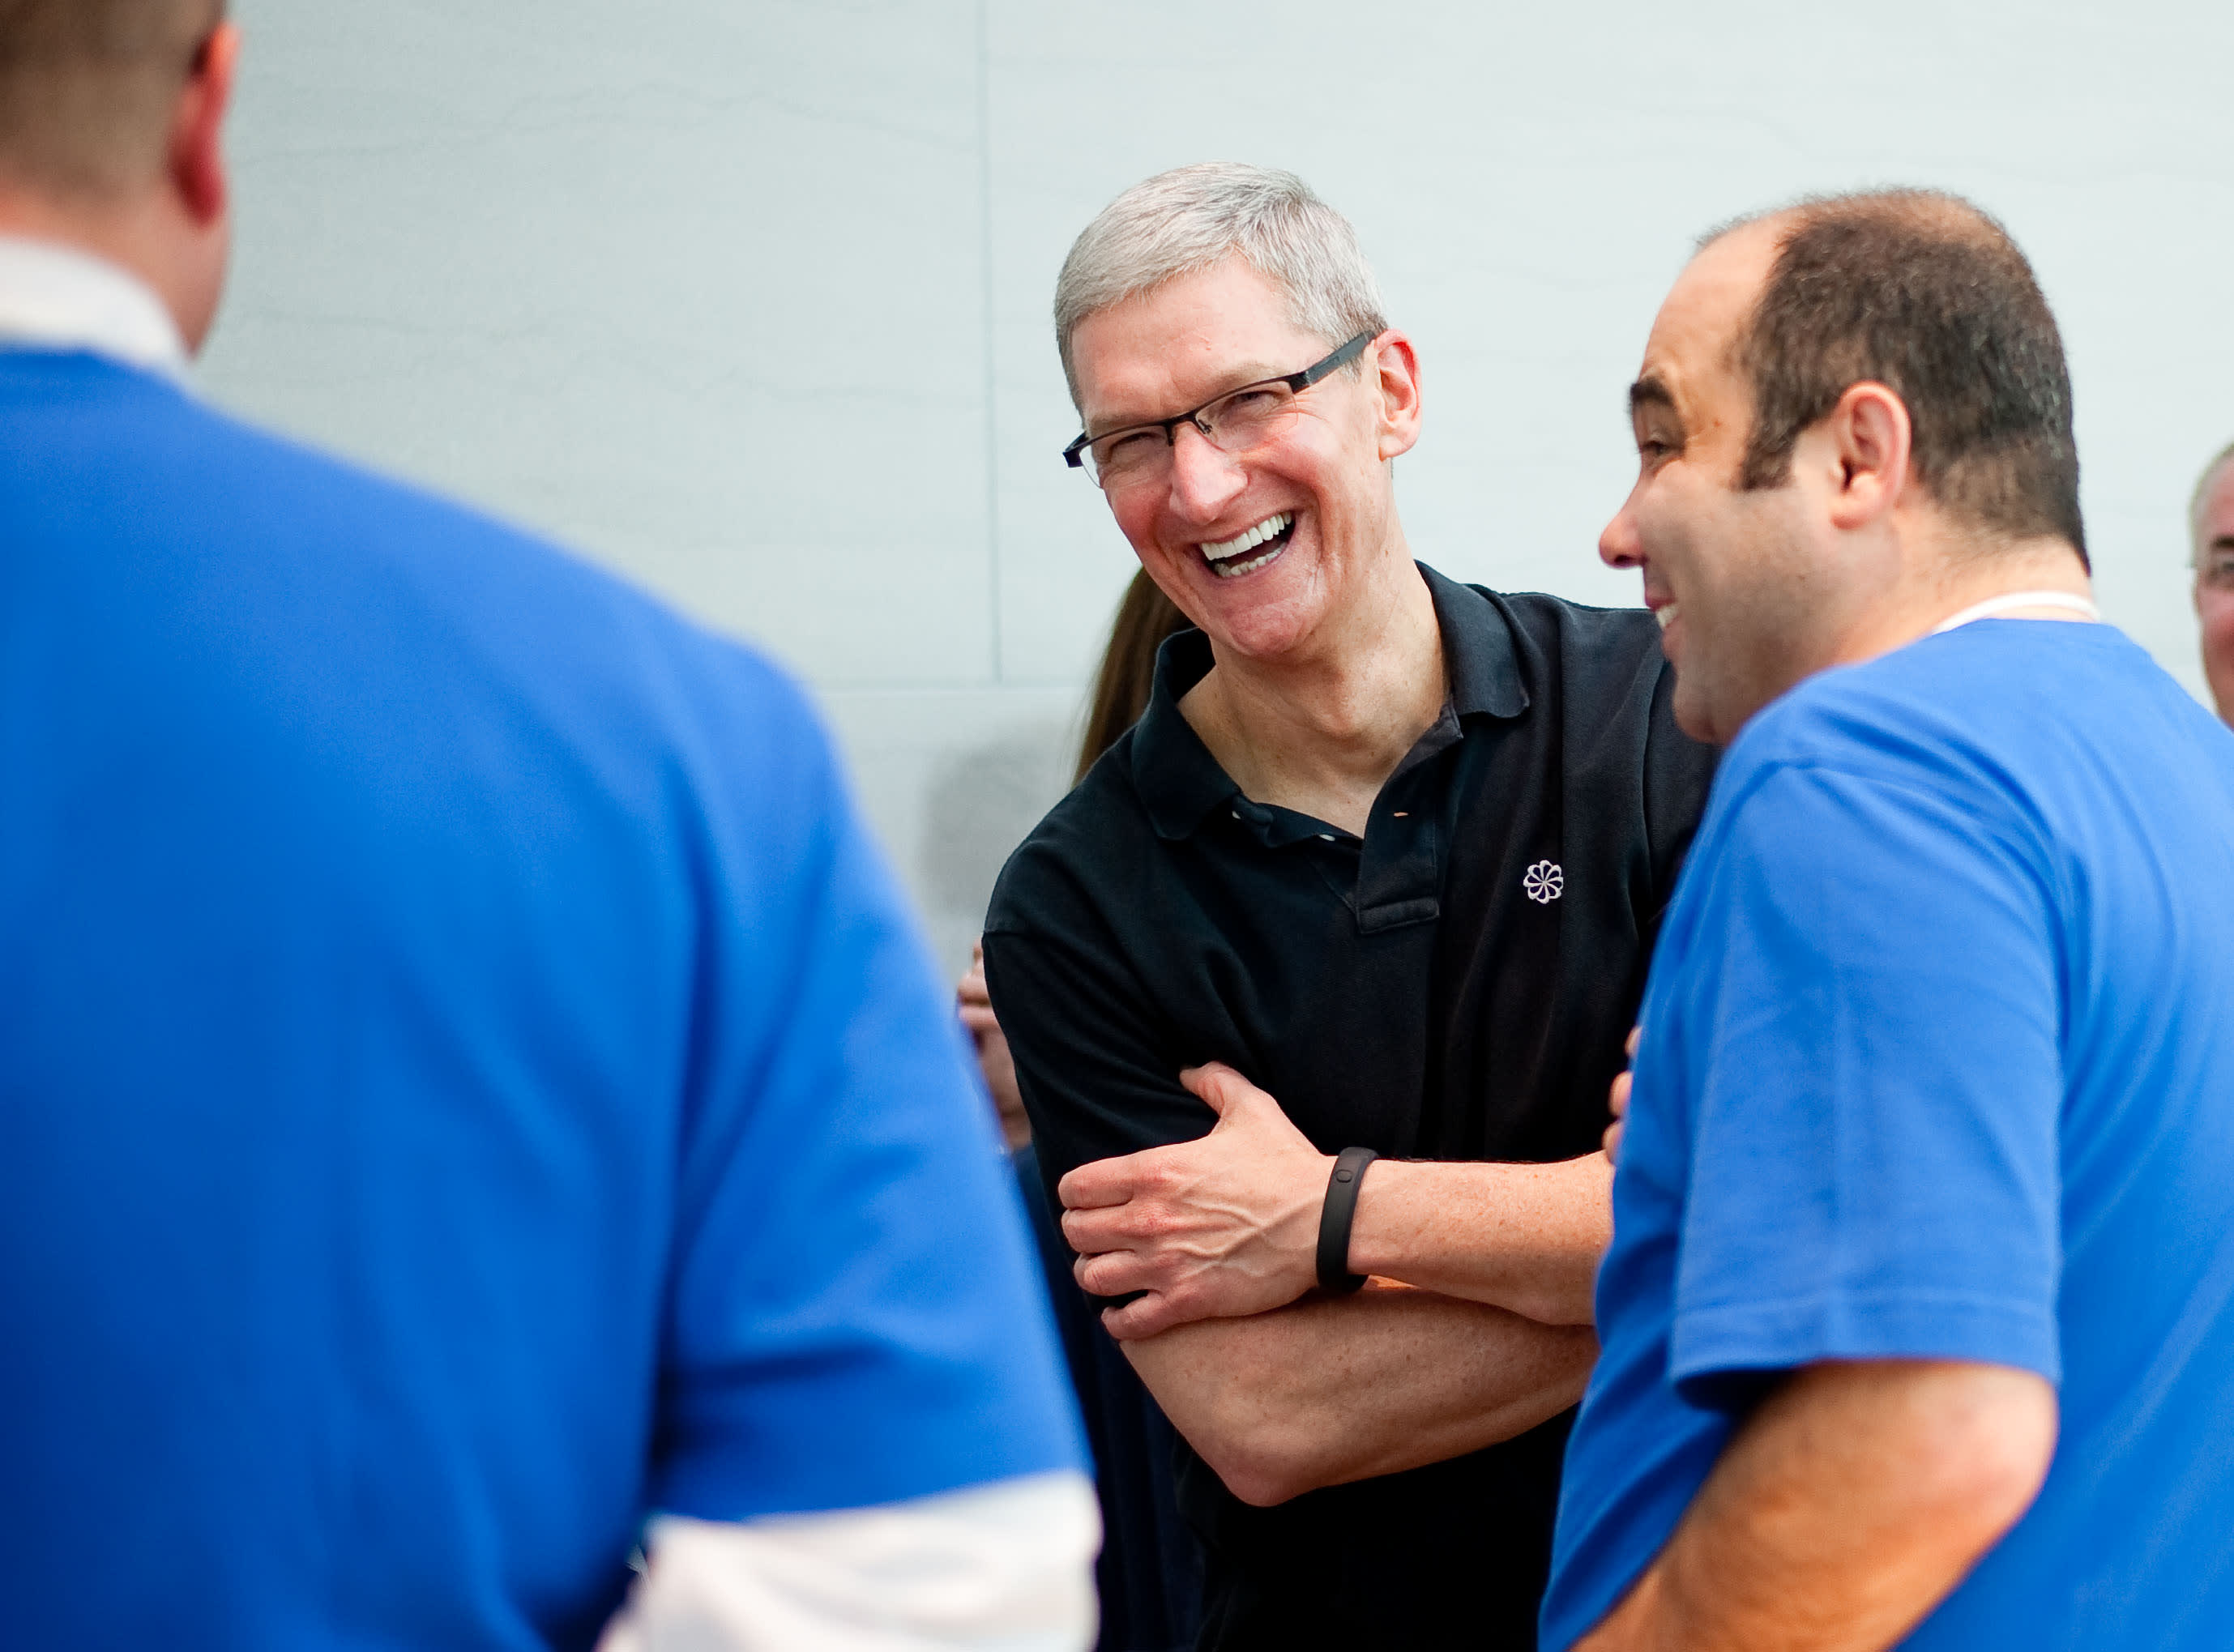 GS: Tim Cook Apple CEO Palo Alto Apple employees